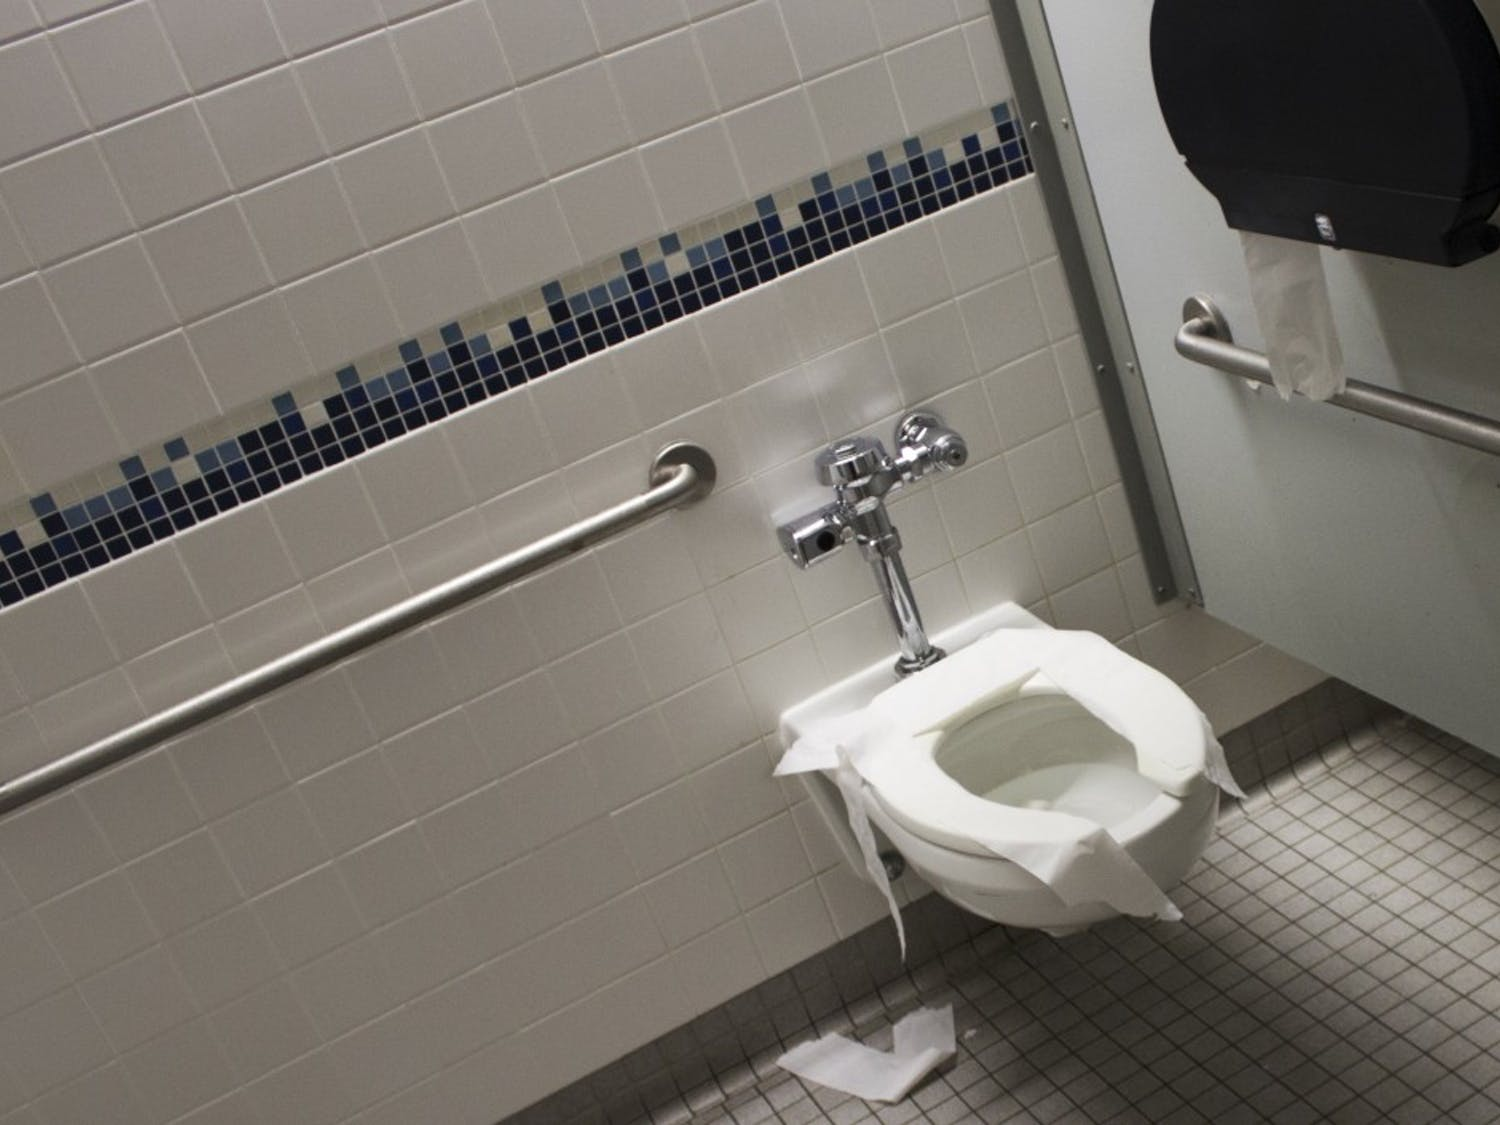 Men's bathrooms are notoriously gross, but The Spectrum sought out the worst of the worst. From urinals to stalls, these restrooms might just be the scariest things on campus this Halloween.